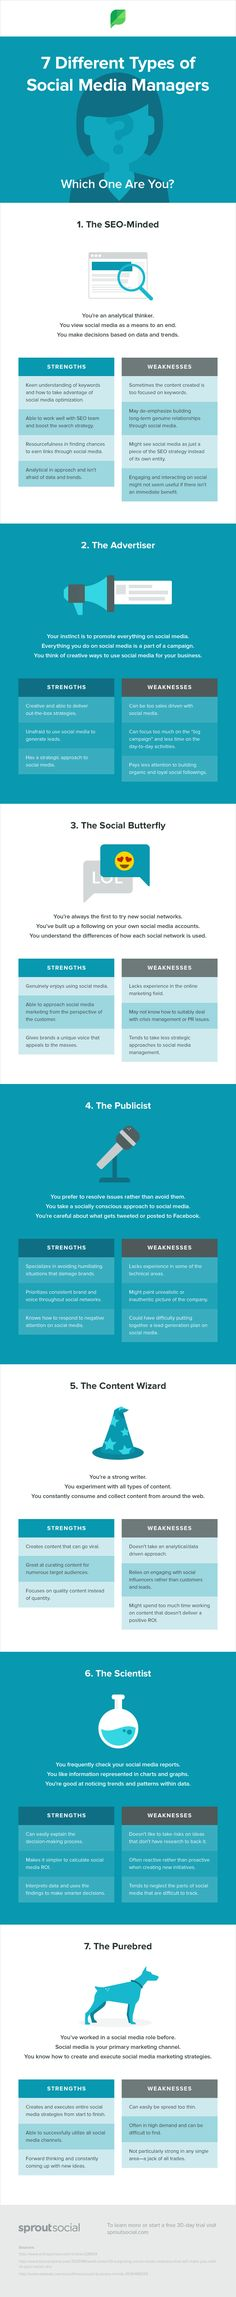 7 Different Types of Social Media Managers